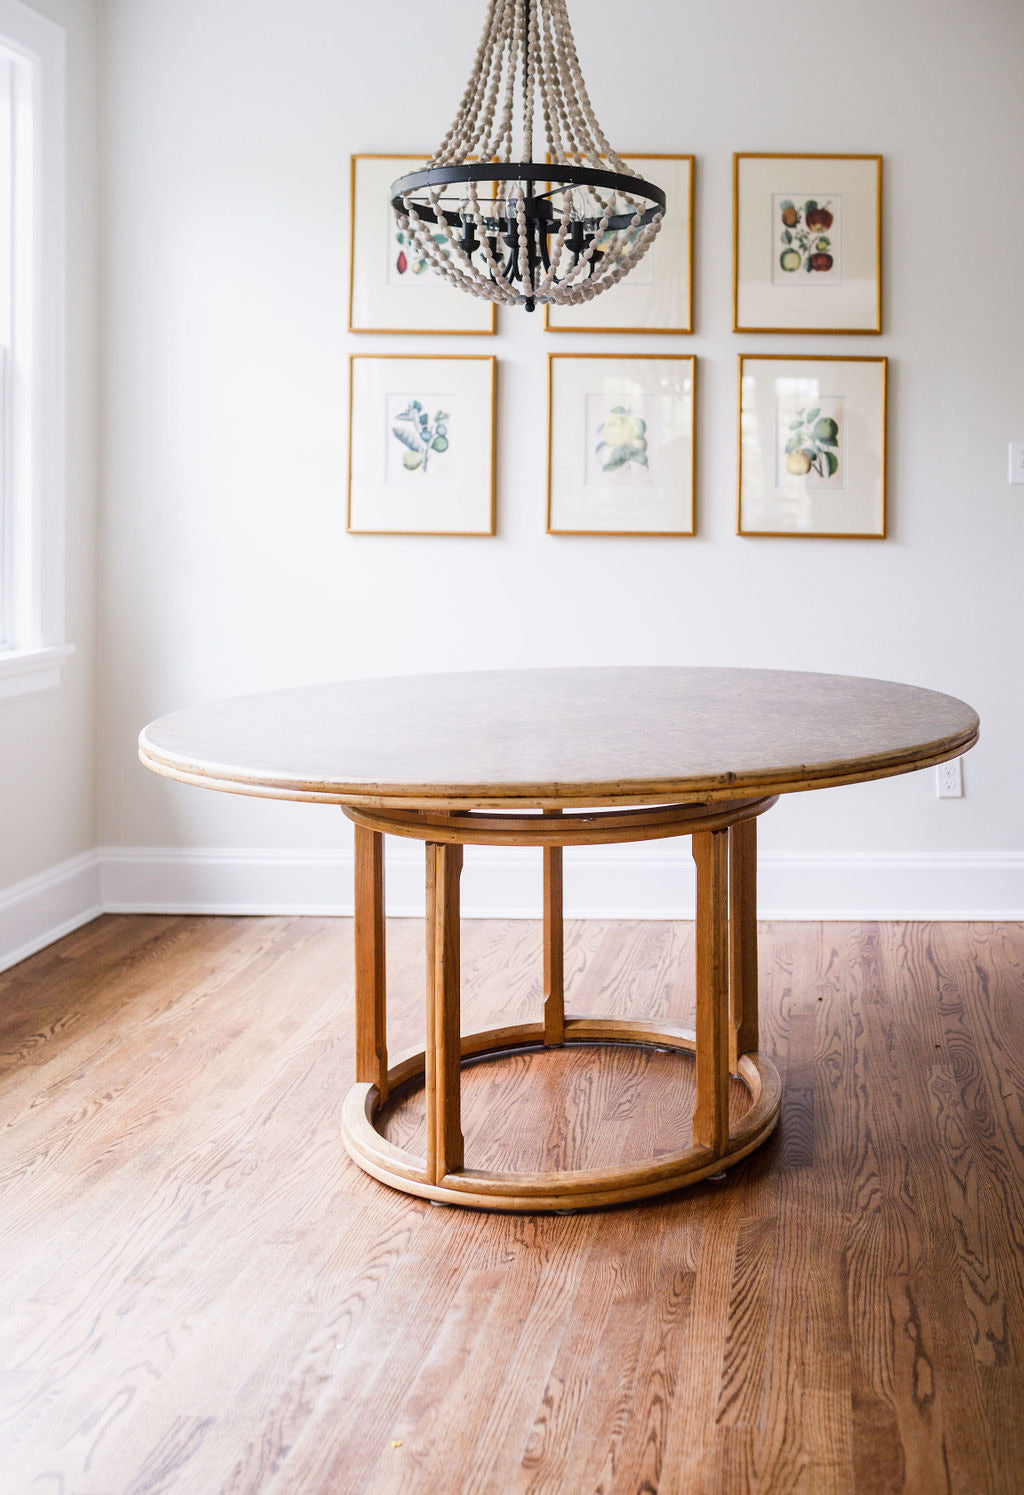 McGuire Bamboo Round Table, c. 1970s